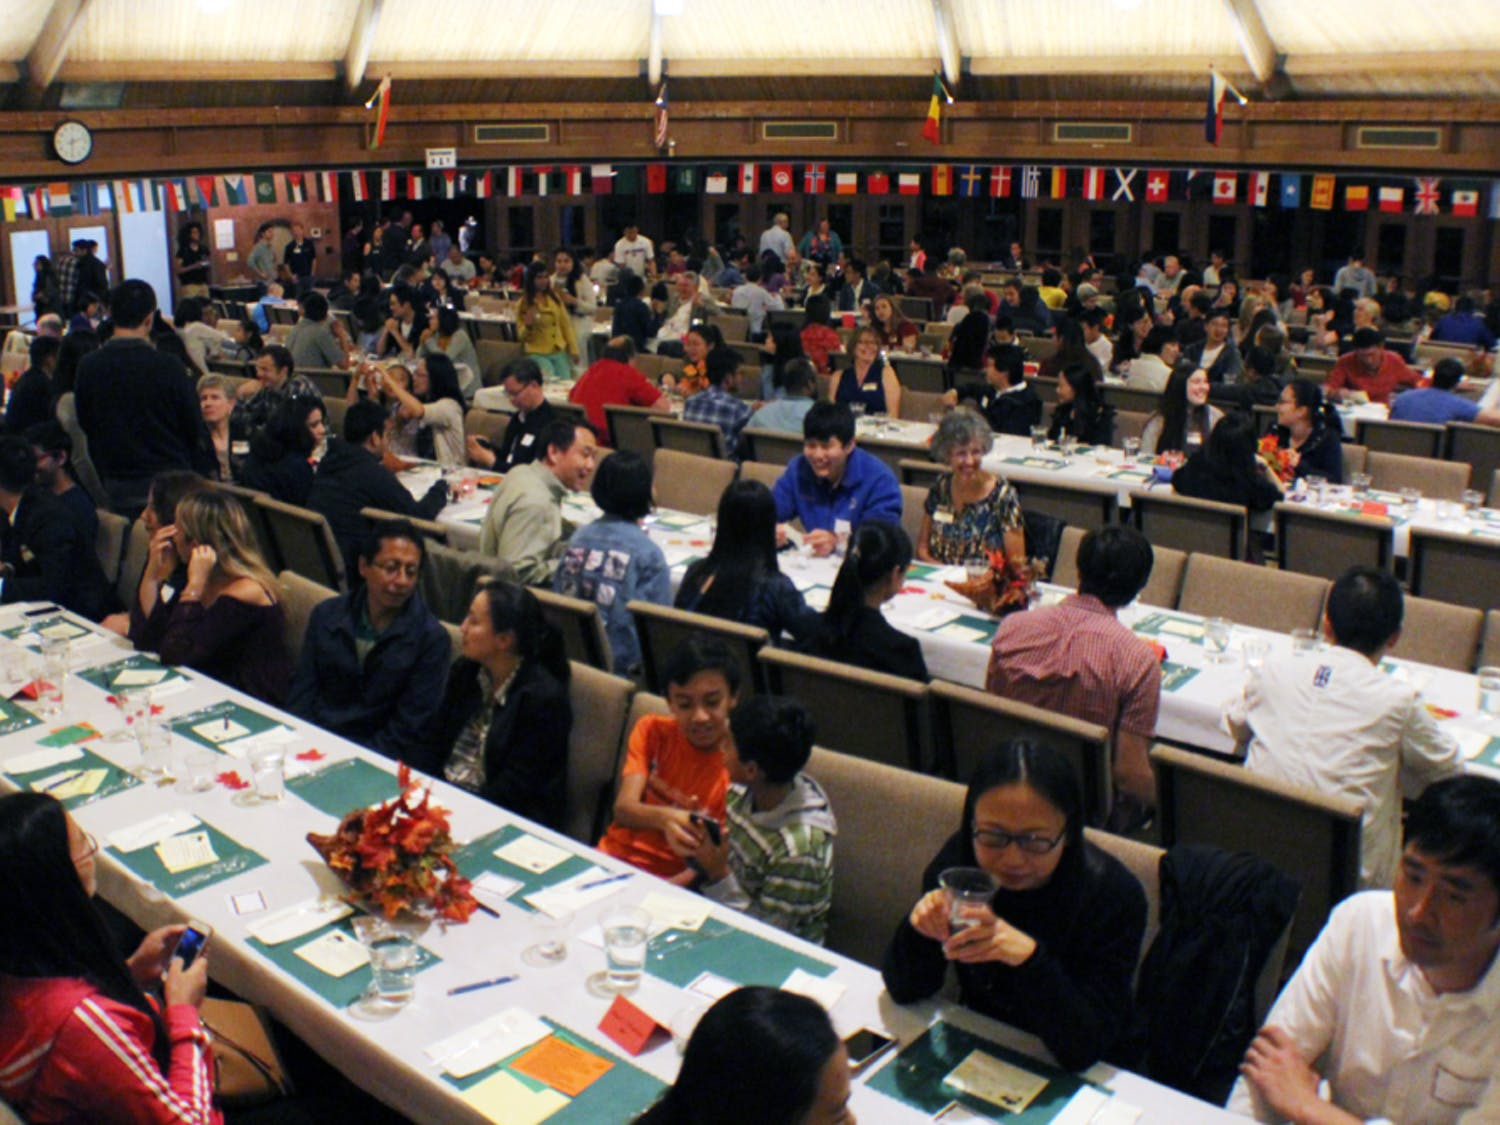 The sanctuary at Creekside Community Church, located at 2640 SW 39th Ave., is packed to the brim for the Thanksgiving Banquet for Internationals on Saturday. International students and scholars from UF were invited to share a Thanksgiving meal.